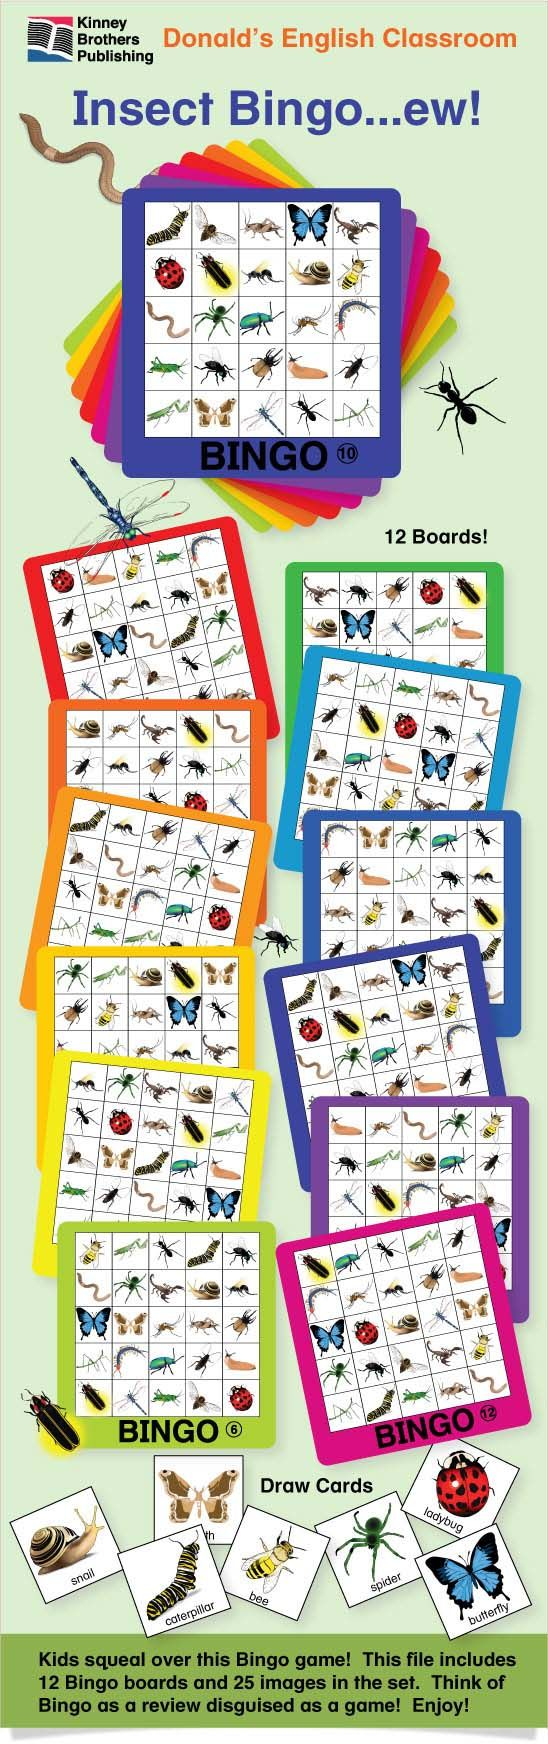 Kids squeal over this game! This file includes 12 Bingo boards and 25 images in the set - so you can play with your youngest ESL students. Think of Bingo as a review disguised as a game!